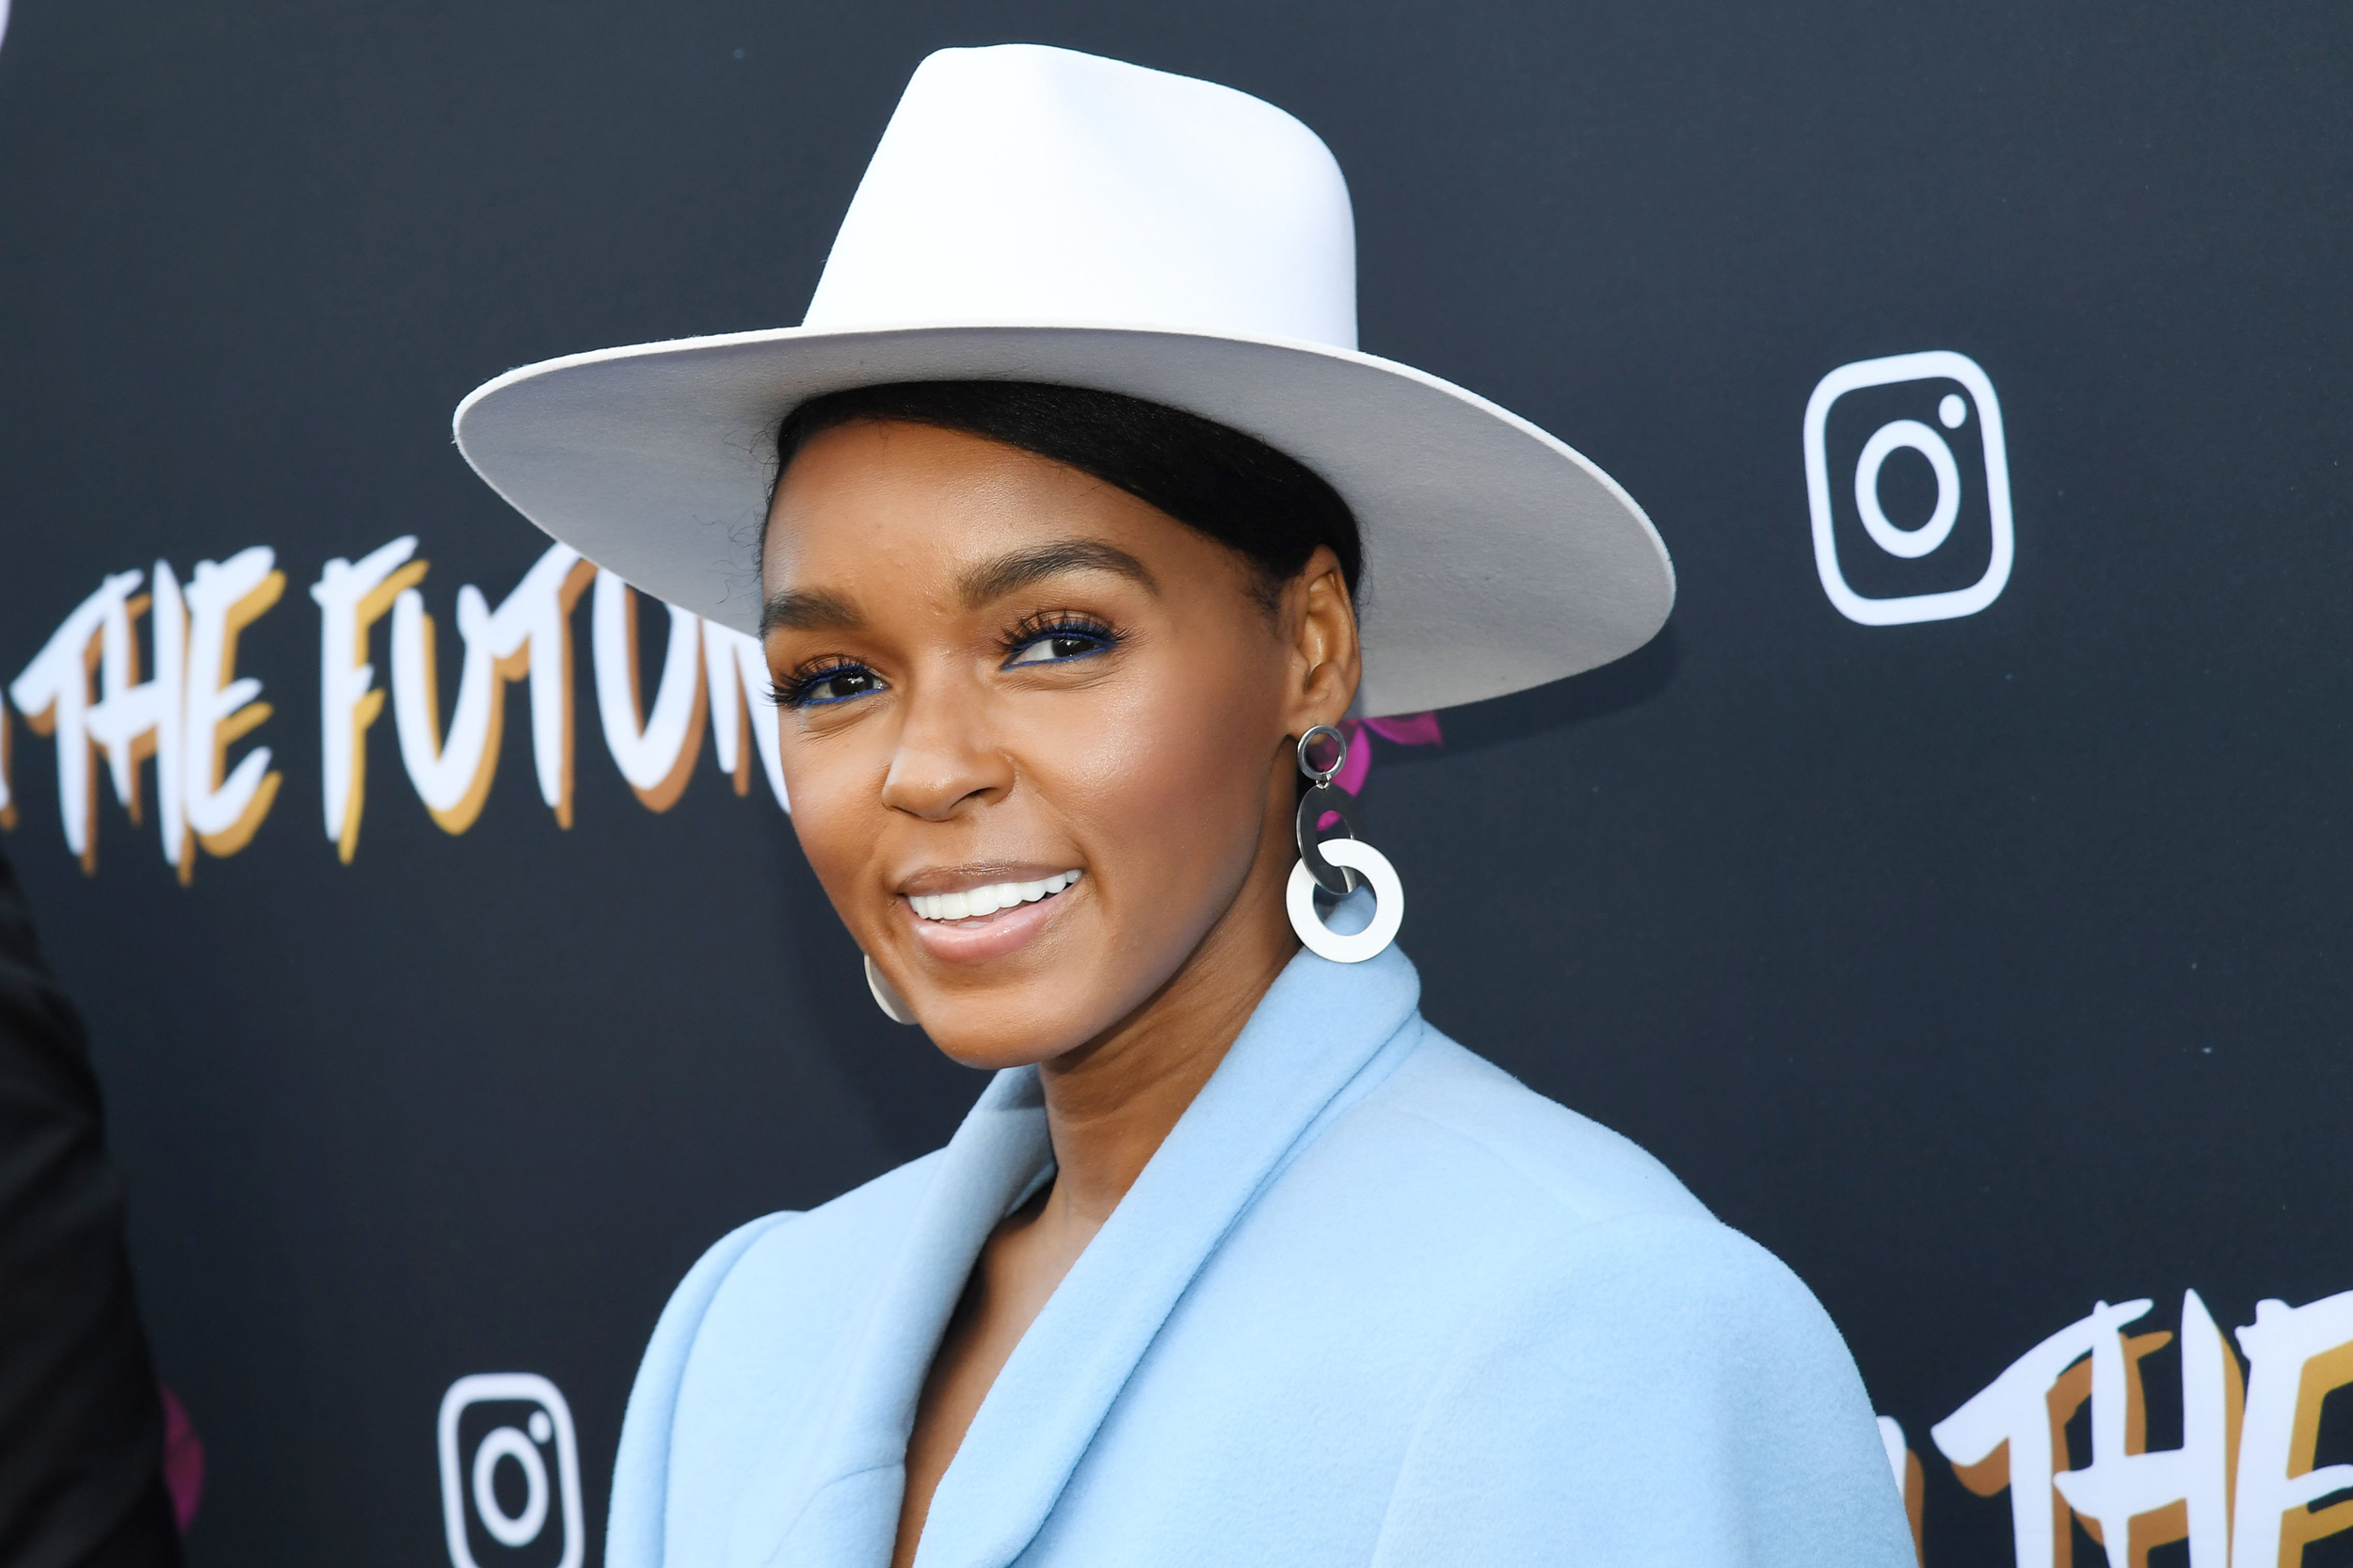 Janelle Monae opens up about coming out as a queer black woman